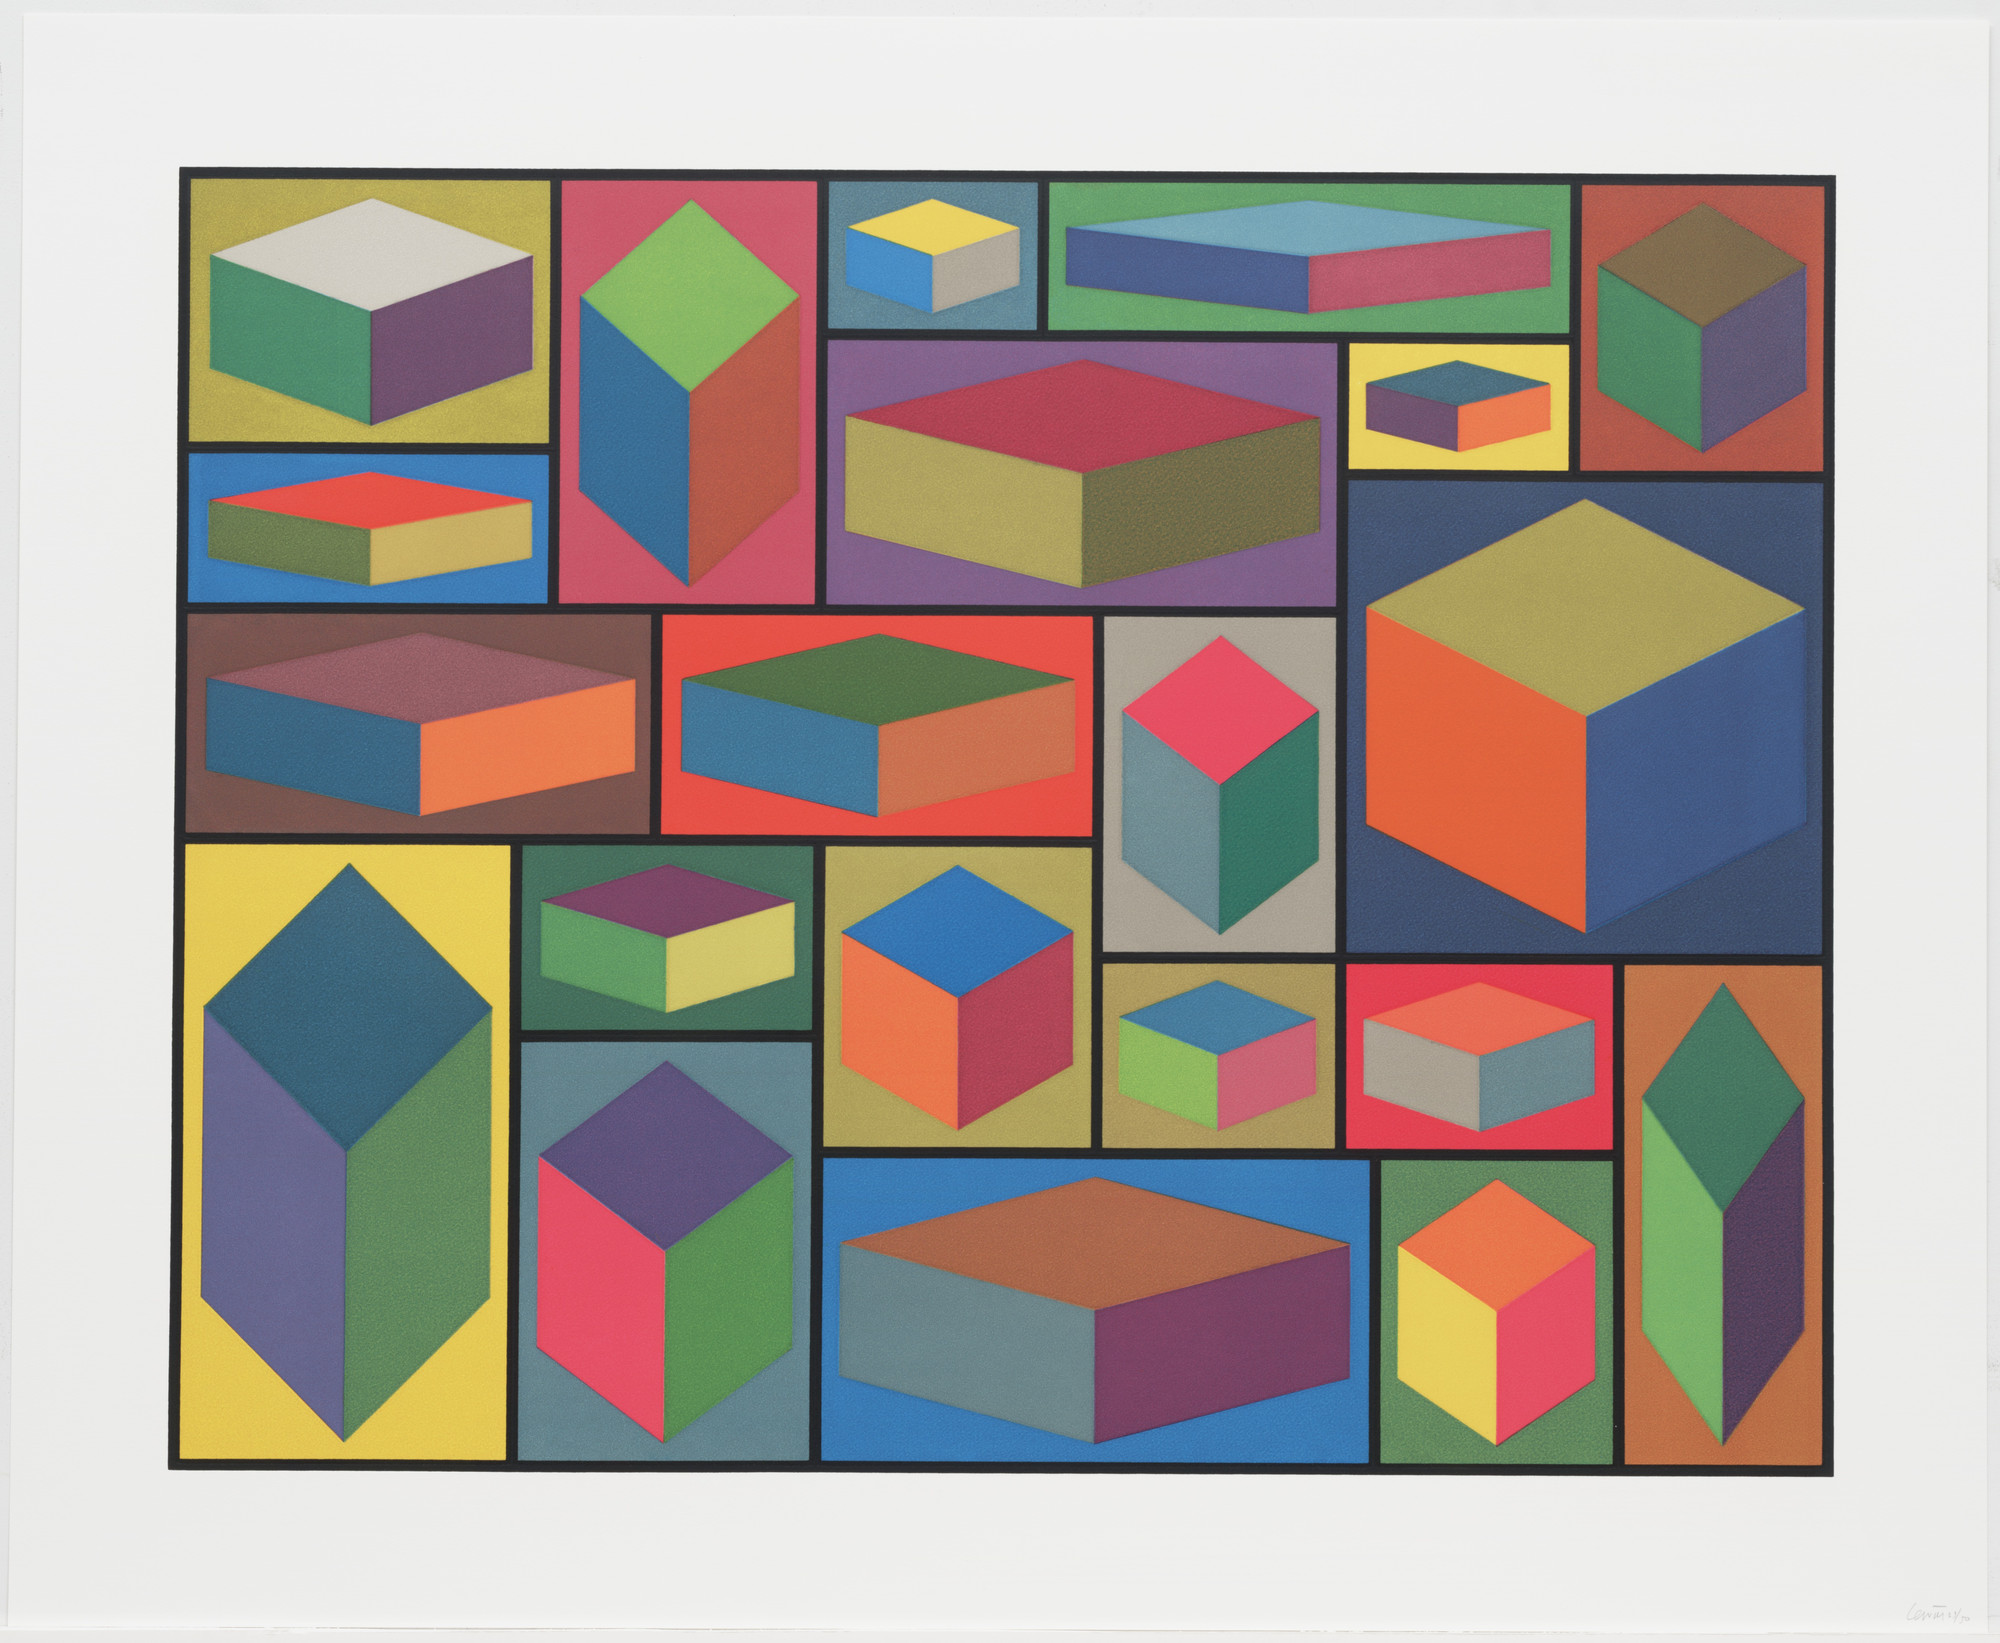 Sol LeWitt. Distorted Cubes (B) from Distorted Cubes (A-E). 2001